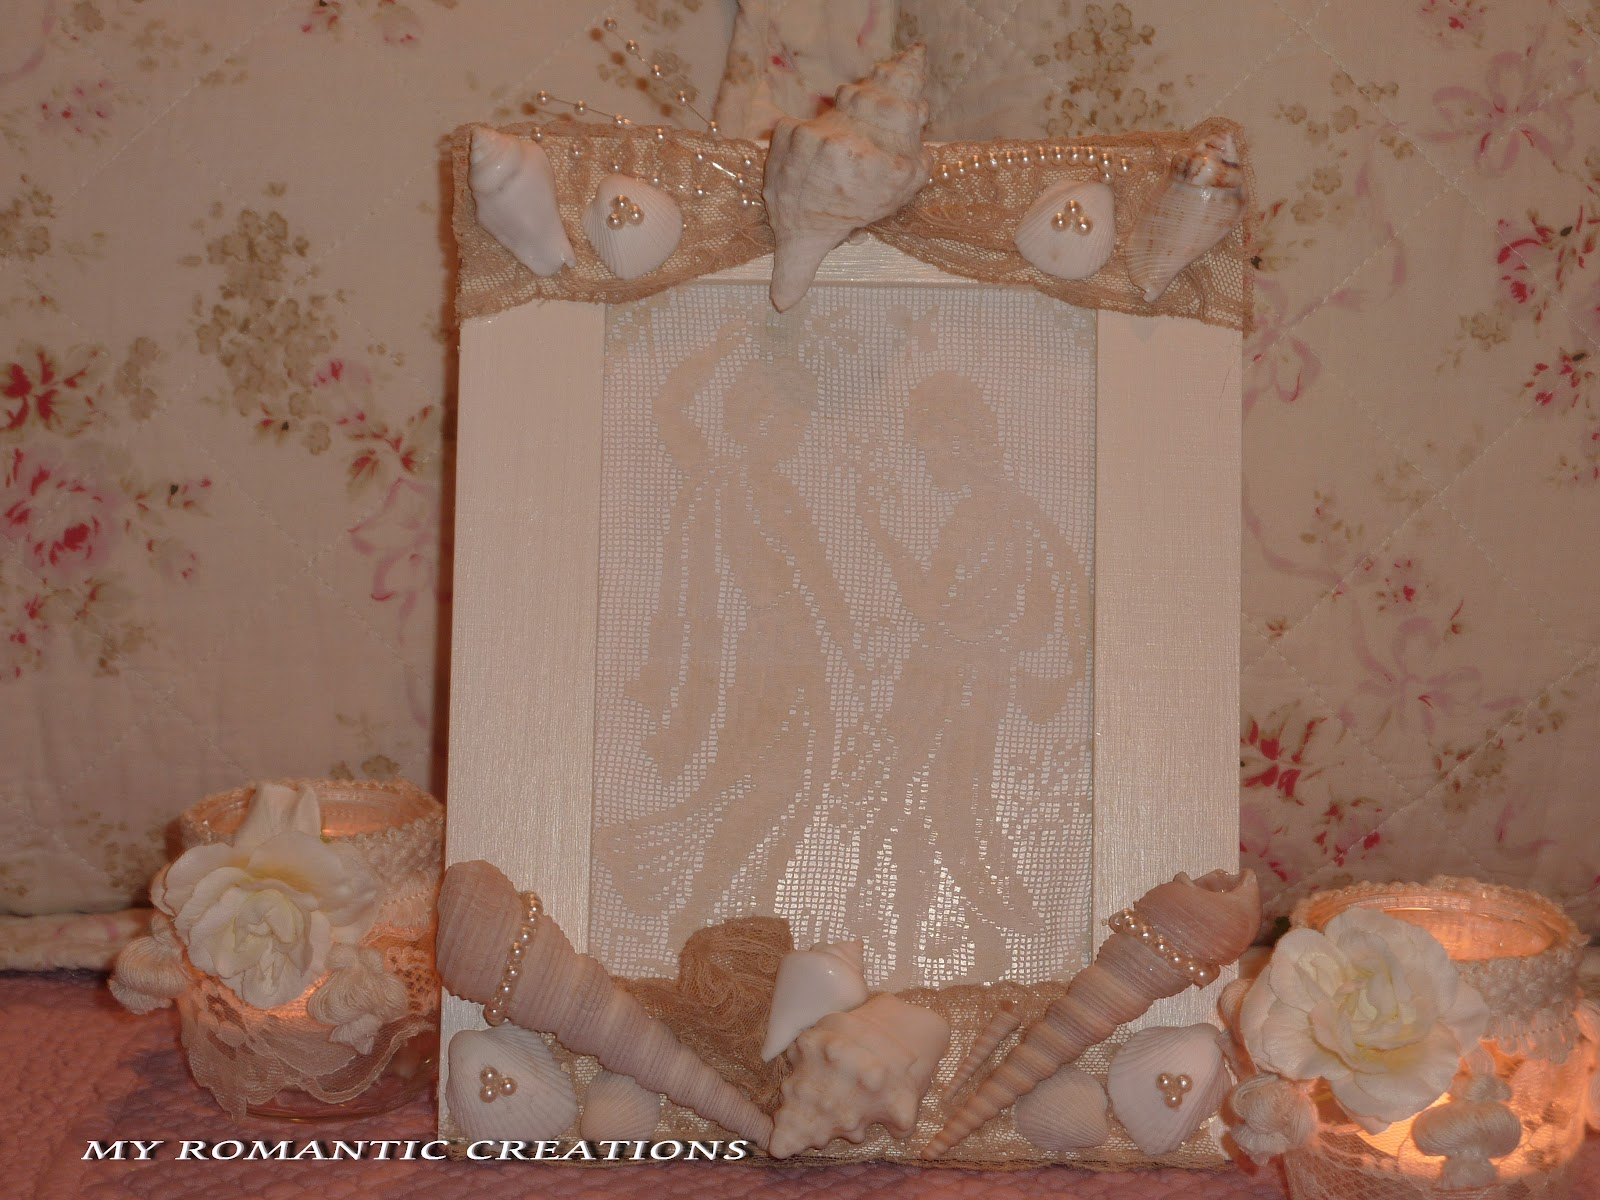 My romantic creations: giugno 2012